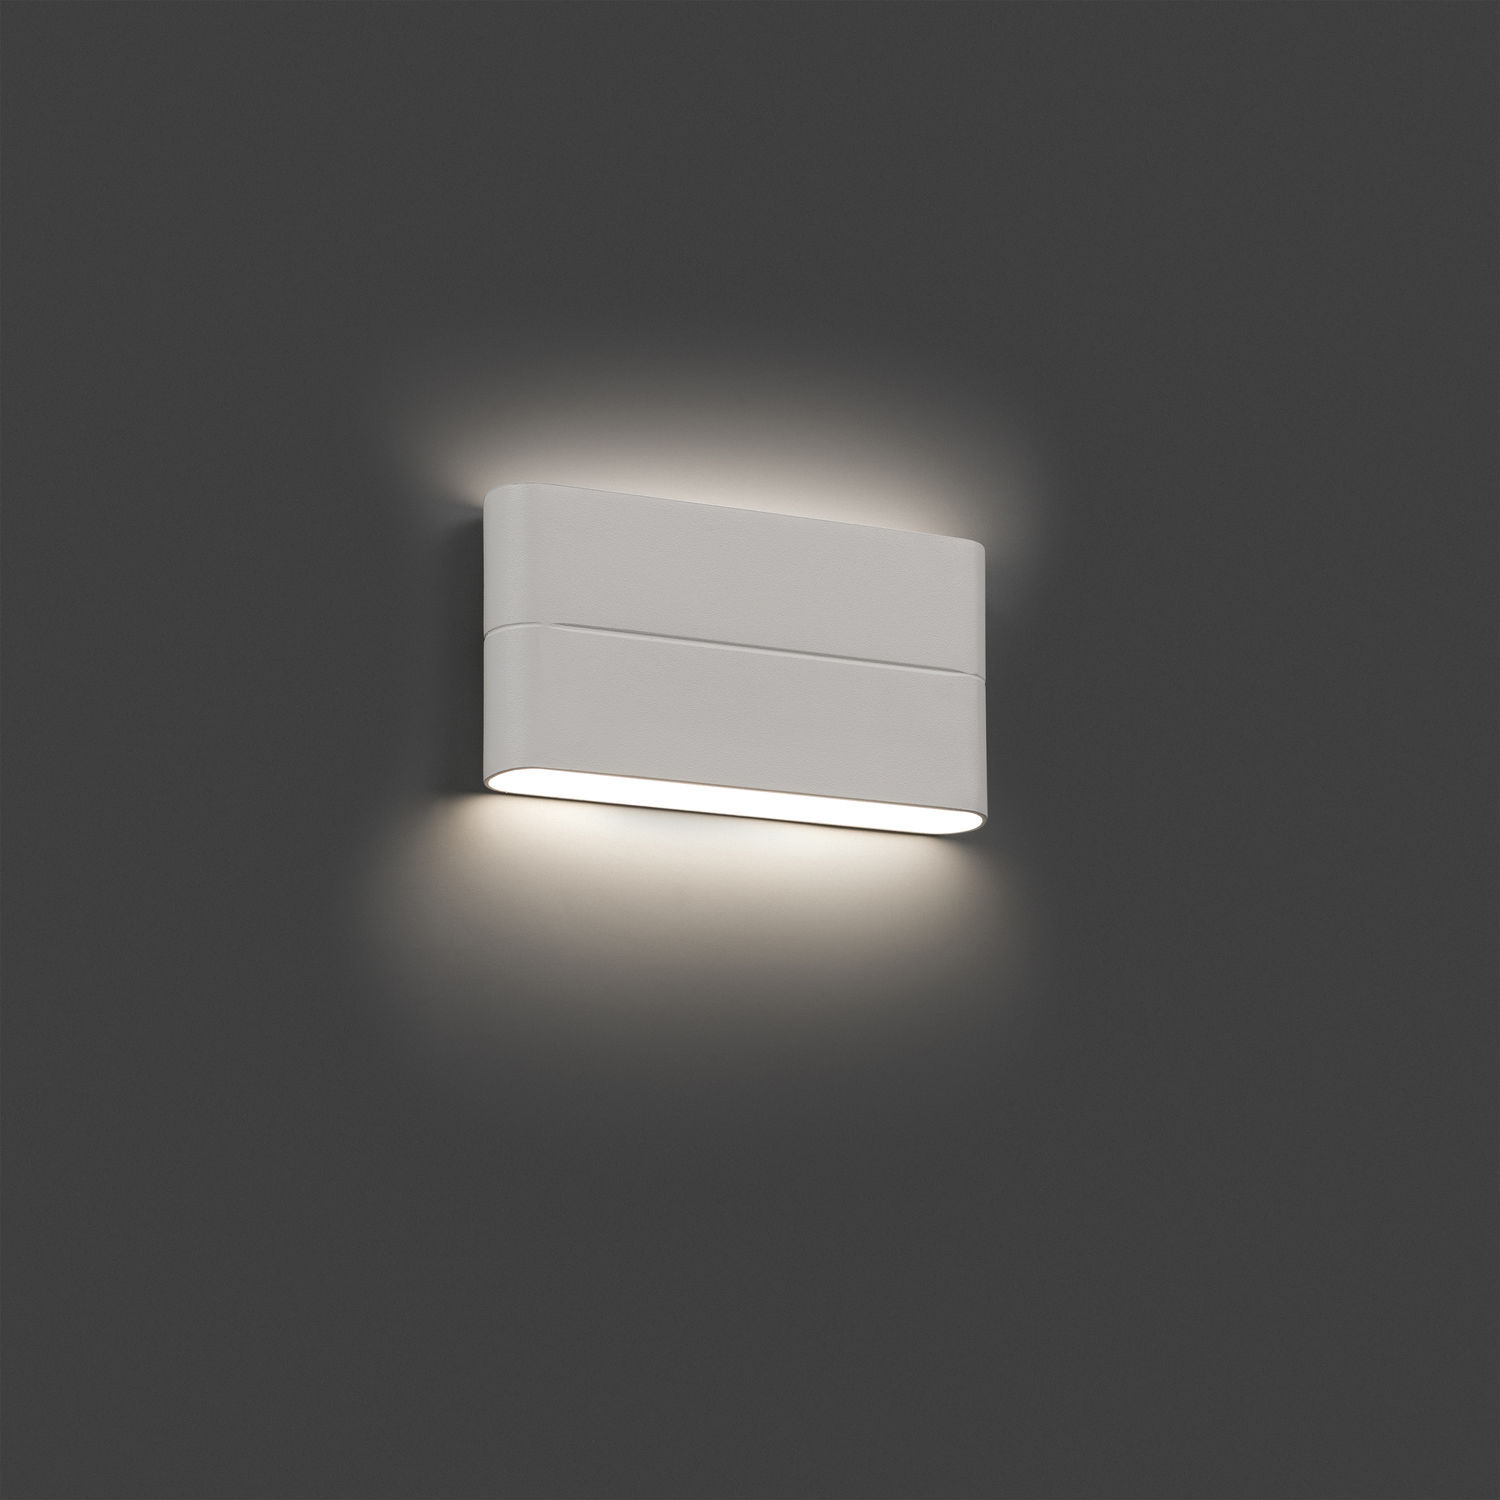 Applique murale d 39 ext rieur aday 2 led ip54 blanc l17 for Luminaire exterieur murale led